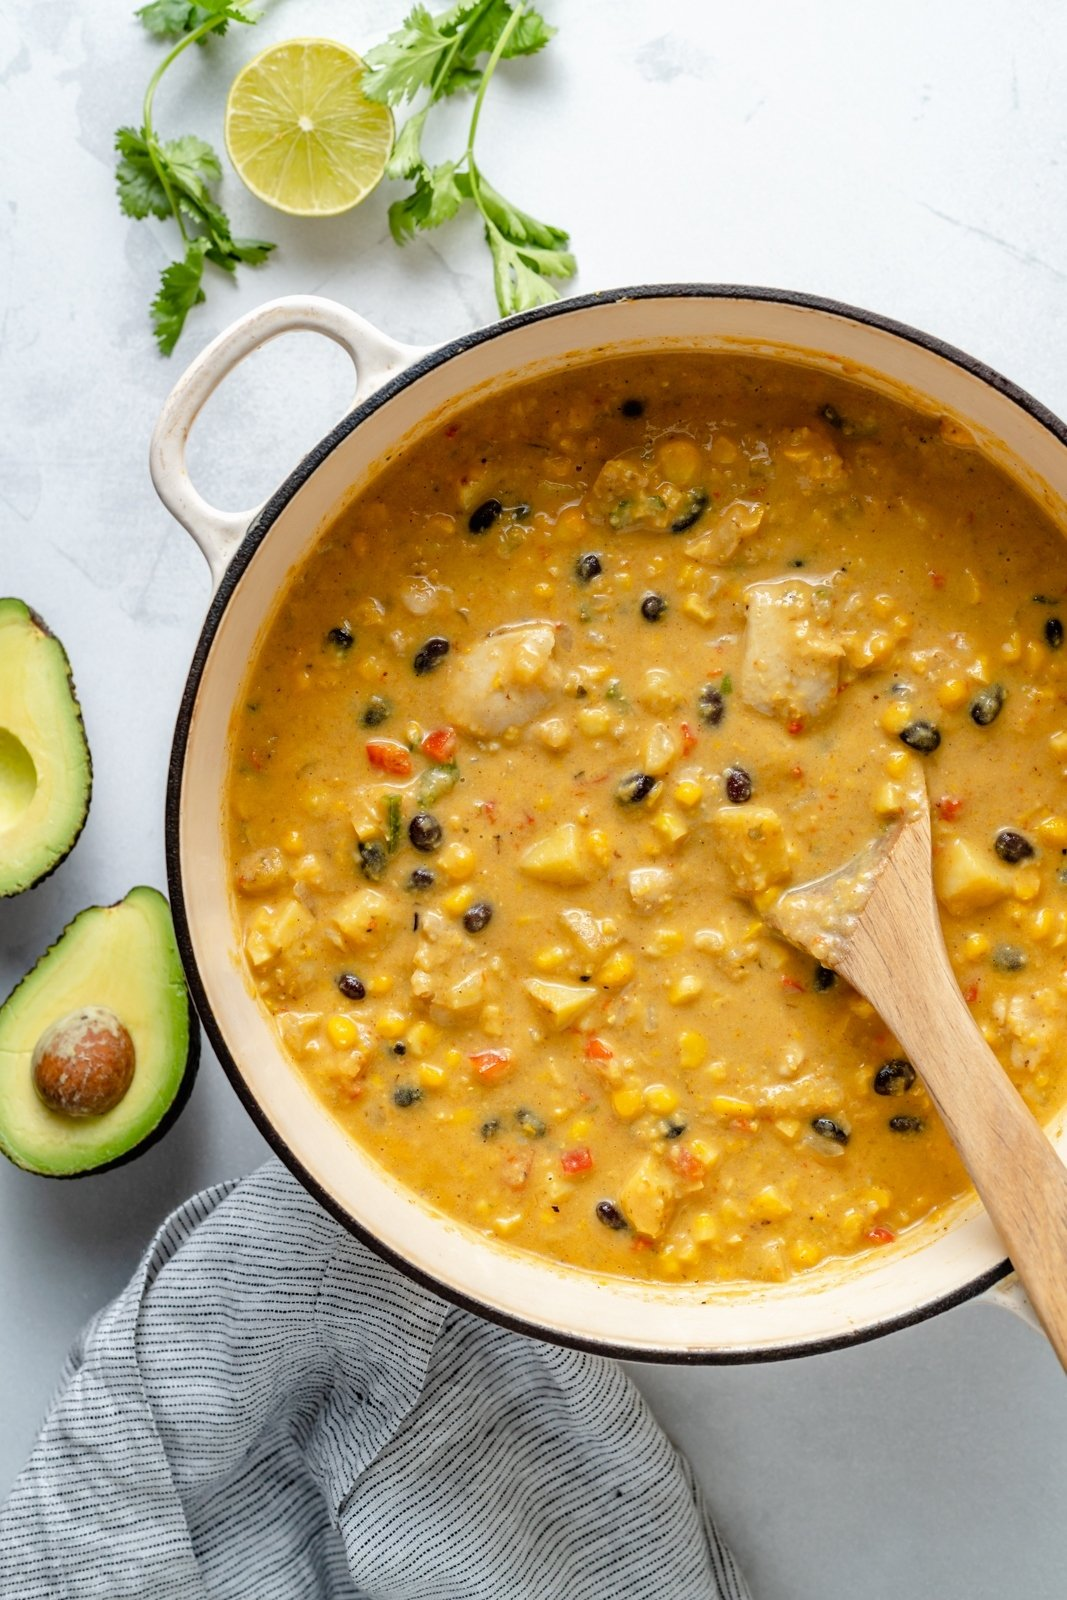 southwest corn chowder in a pot with a wooden spoon